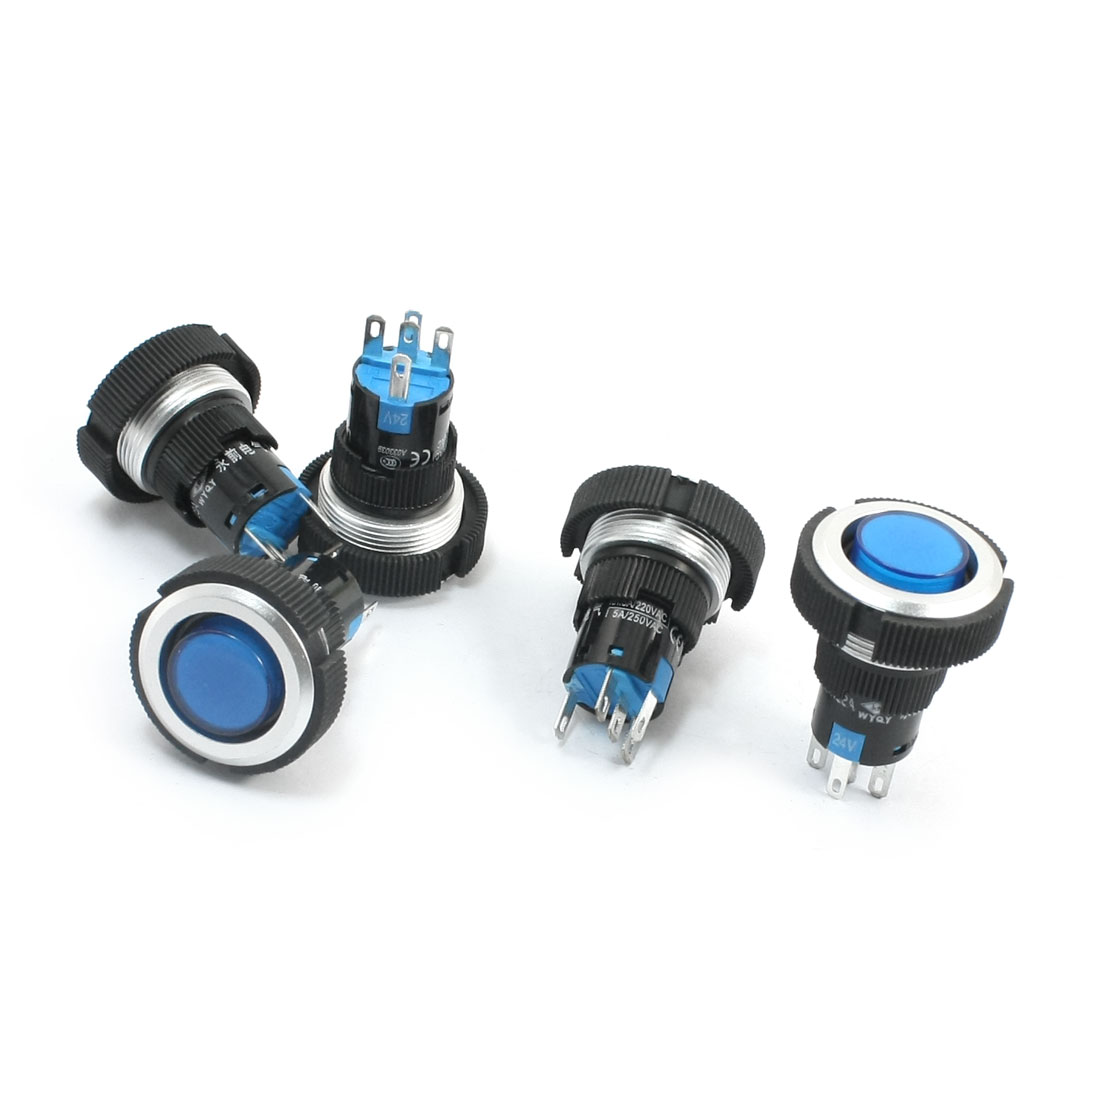 5Pcs 24V 22mm Thread Panel Mount SPDT 1NO 1NC 5Pin Soldering Momentary Action Blue Pilot Lamp Push Button Switch